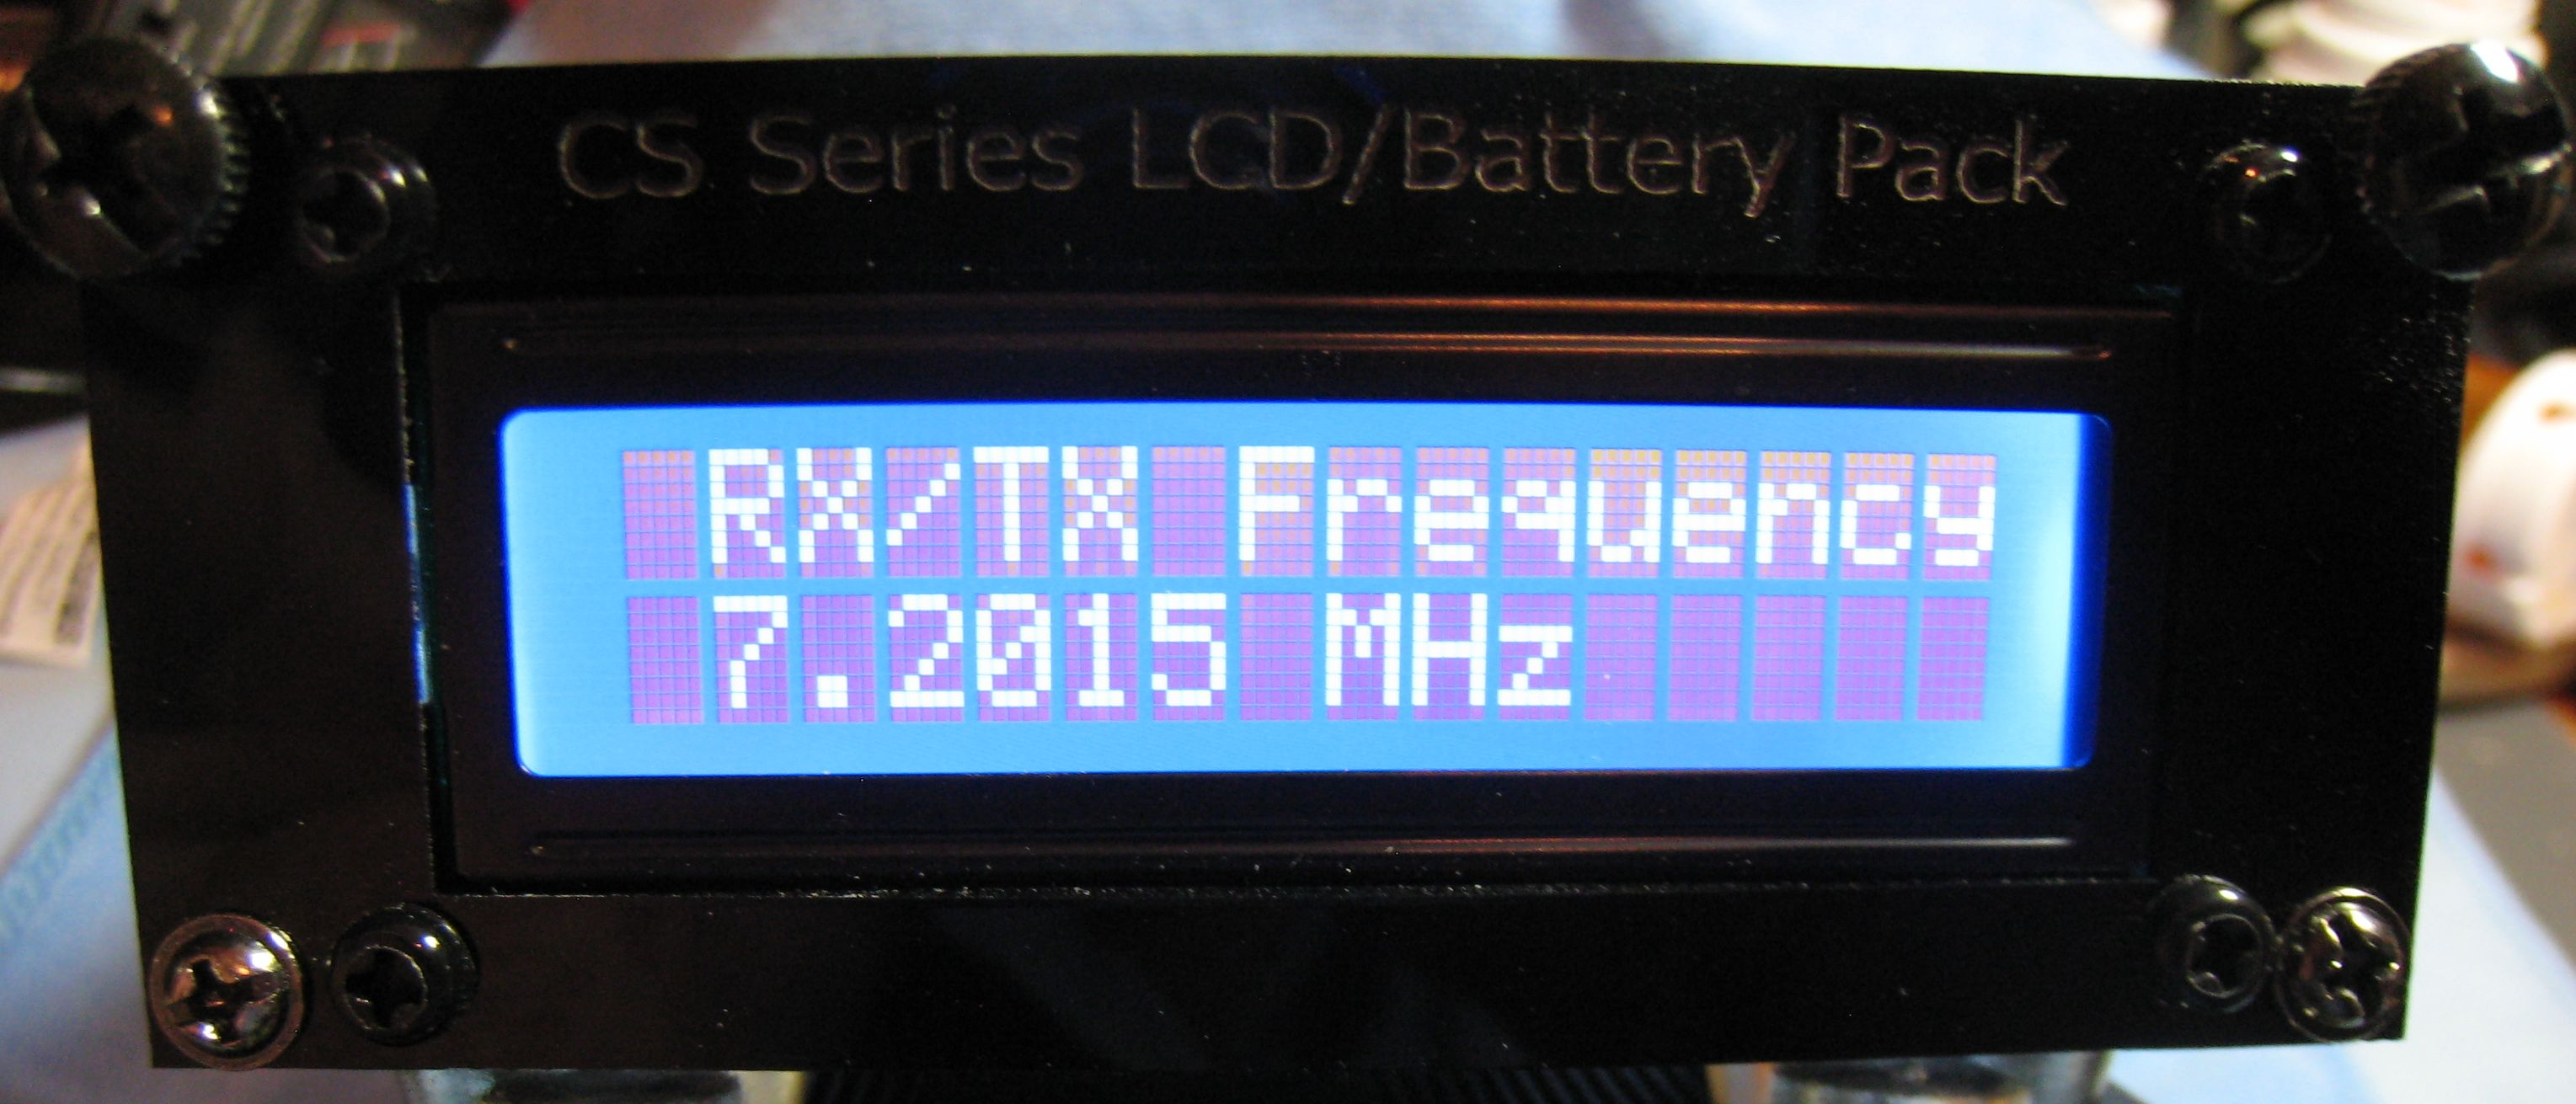 Frequency Display for CS-Series